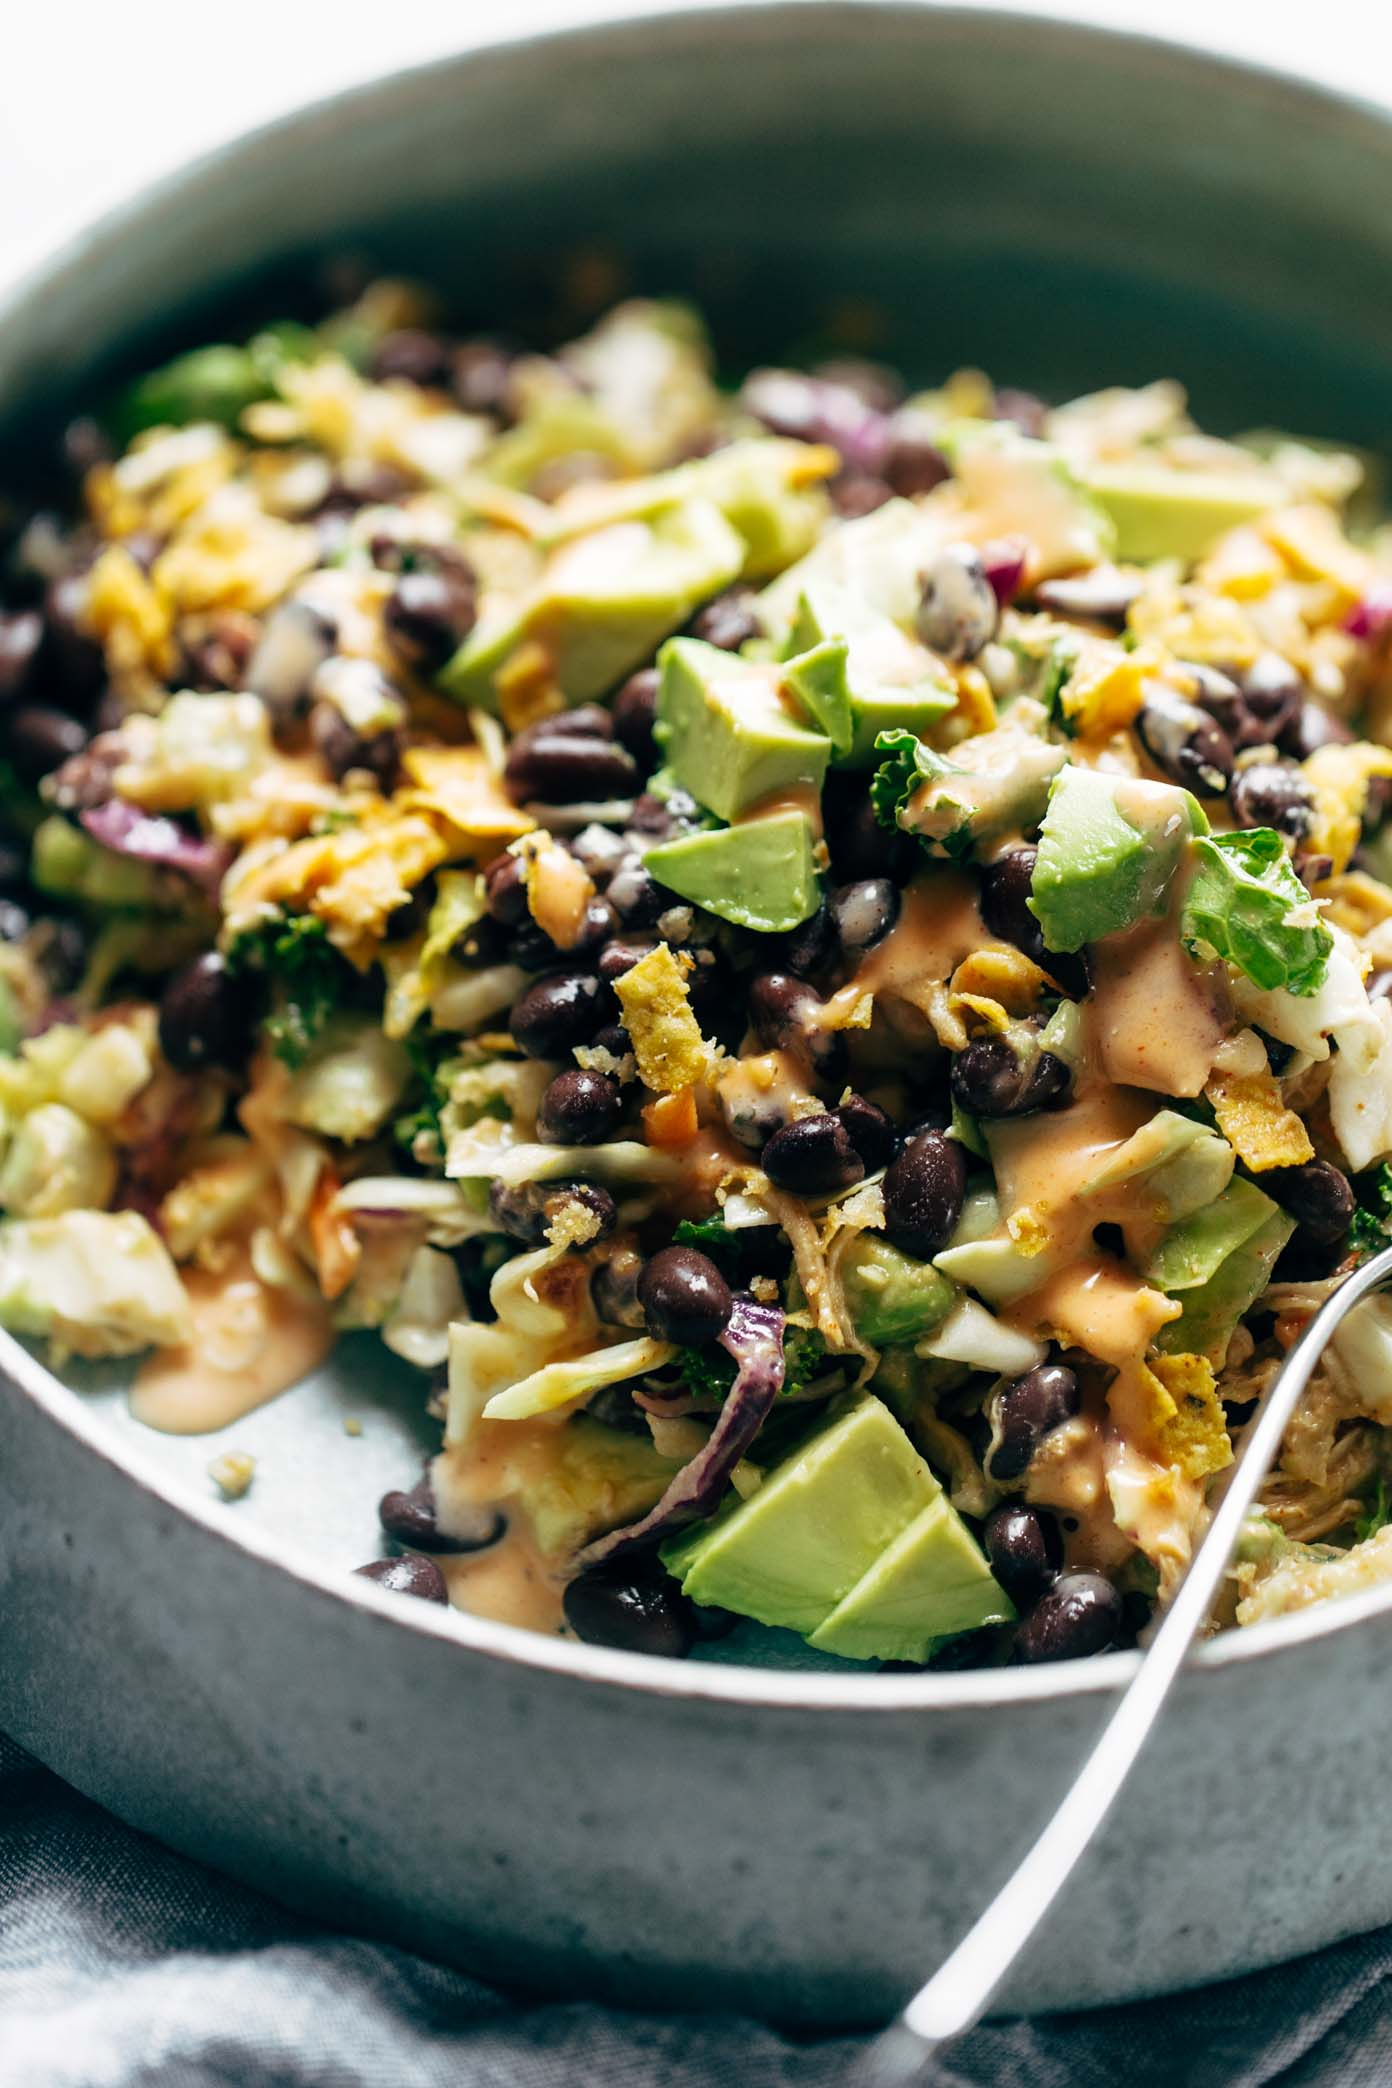 Cheater's Power Salad - kale, cabbage, avocado, green onion, cilantro, black beans, crispy onions, tortilla strips, chicken, and BBQ ranch dressing, made from a salad mix! I KNOW. perfect for easy lunches! | pinchofyum.com